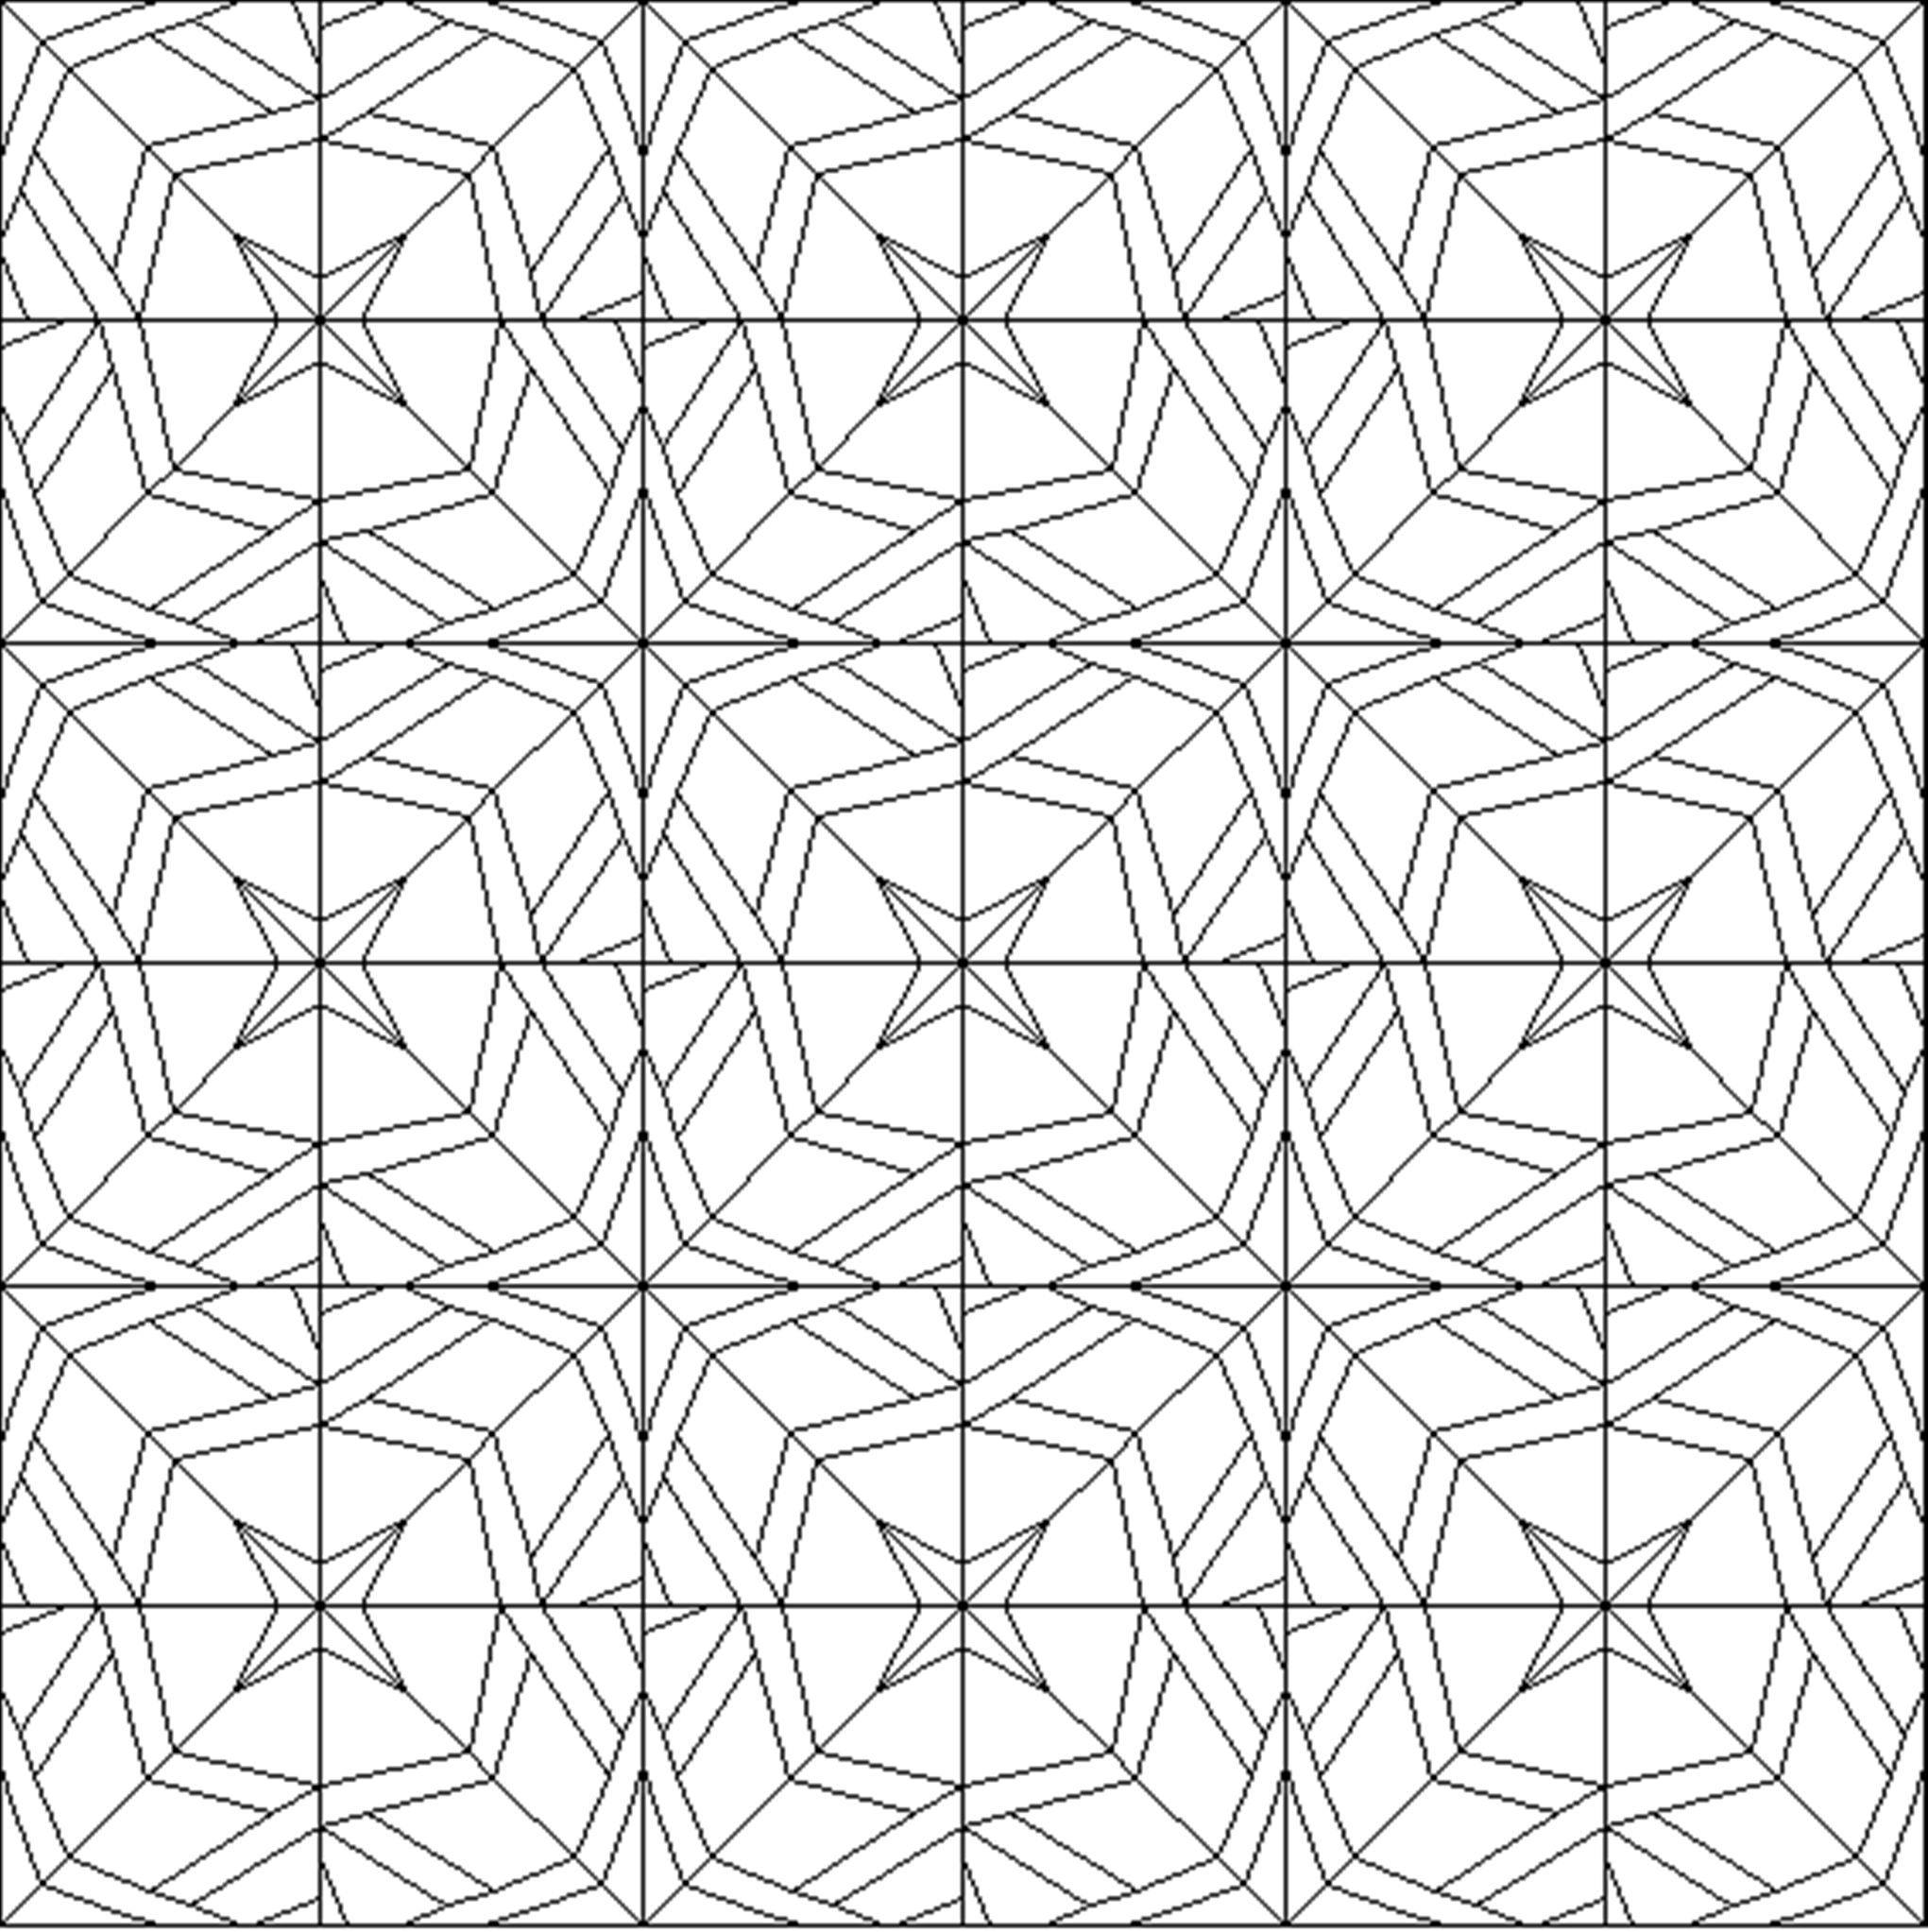 Quilt Block Coloring Pages For Kids Sketch Coloring Page